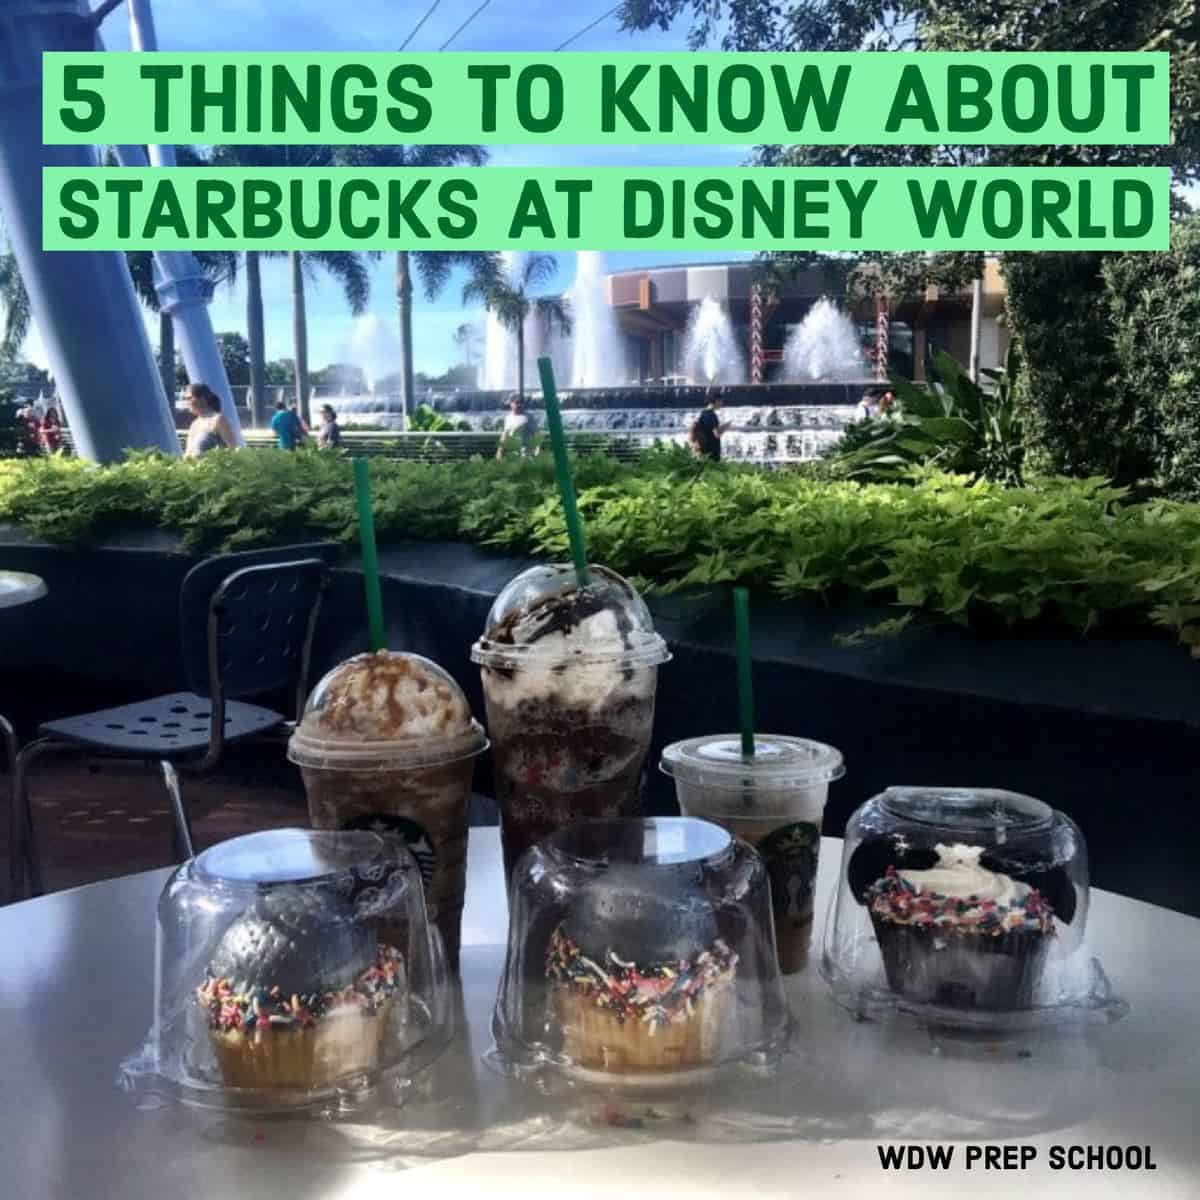 5 things to know about Starbucks at Disney World